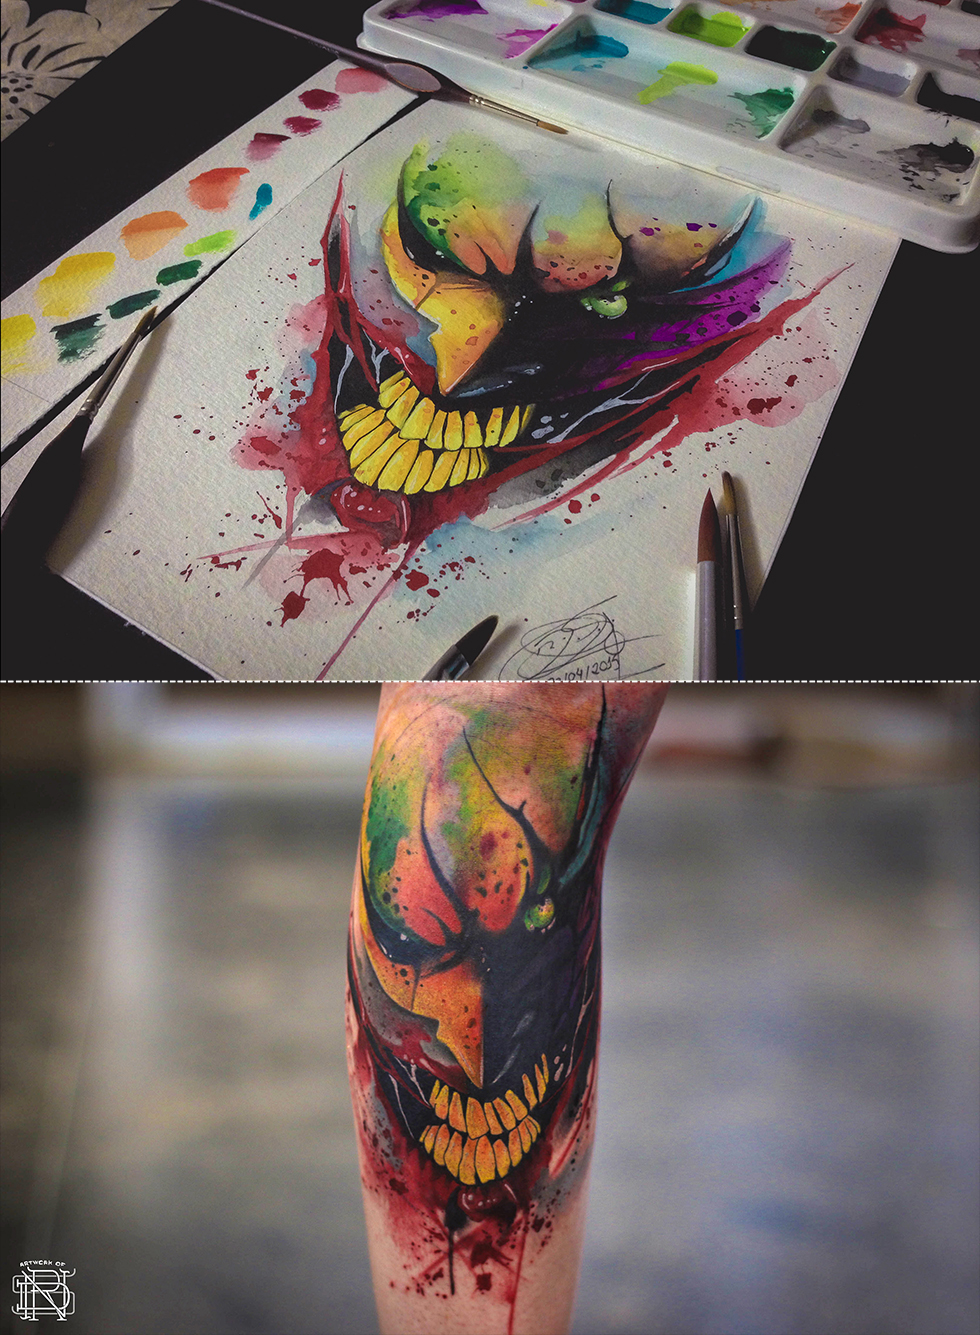 Dêner Silva - Illustrator tattooist - The VandalList (4)